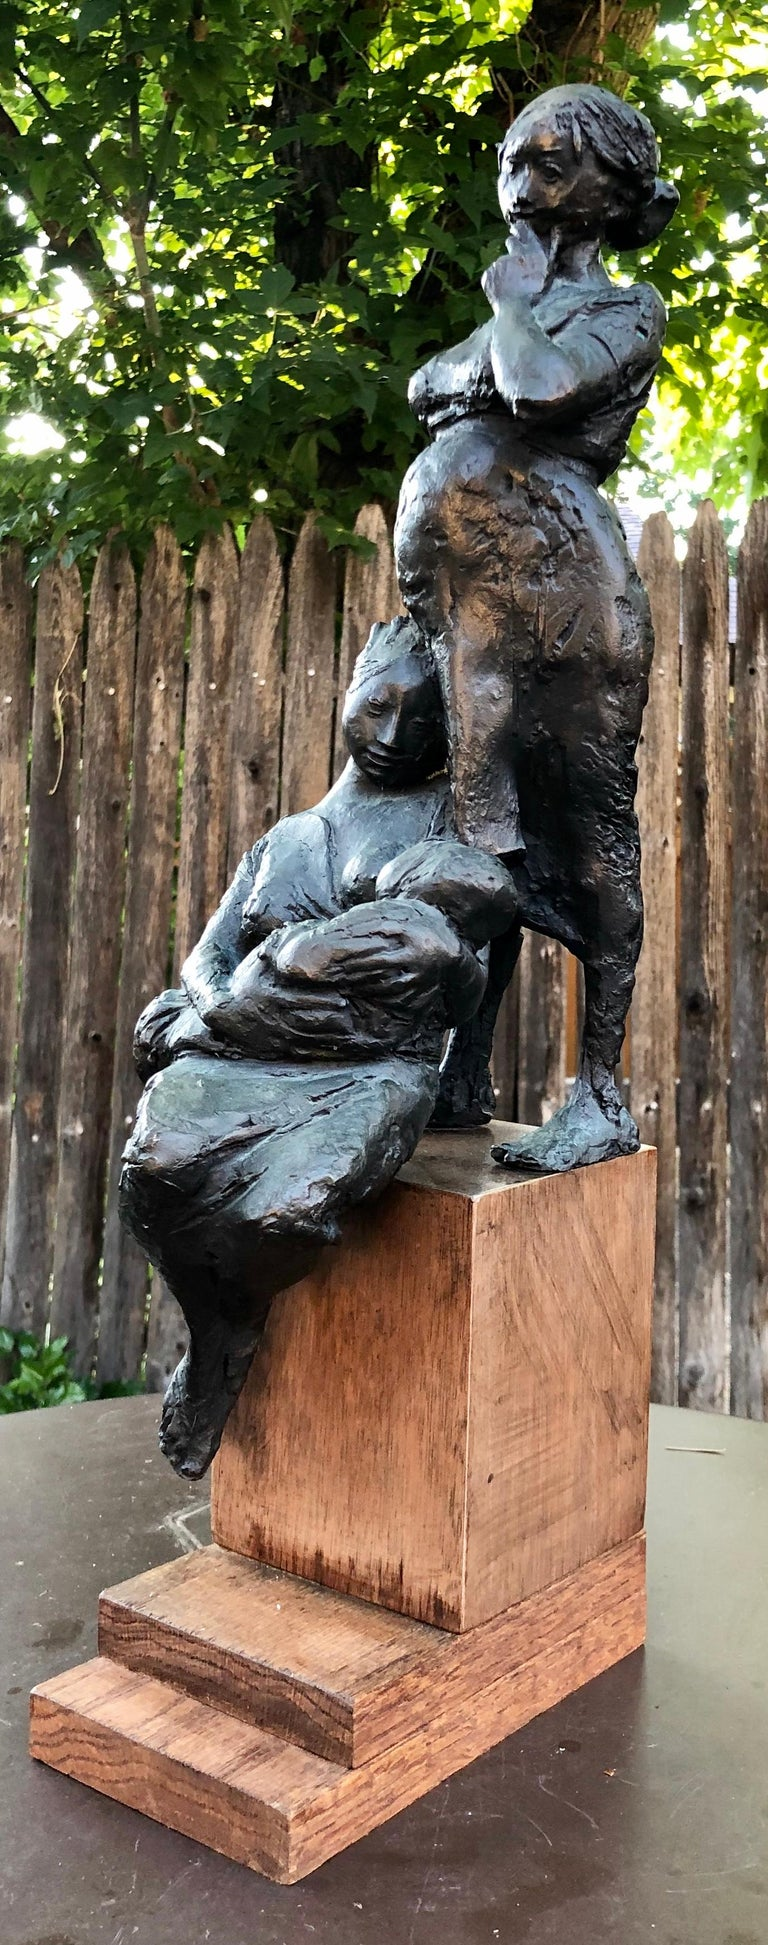 Provenance: from a Palm Beach estate Bronze sculpture on wooden base measuring 20.5